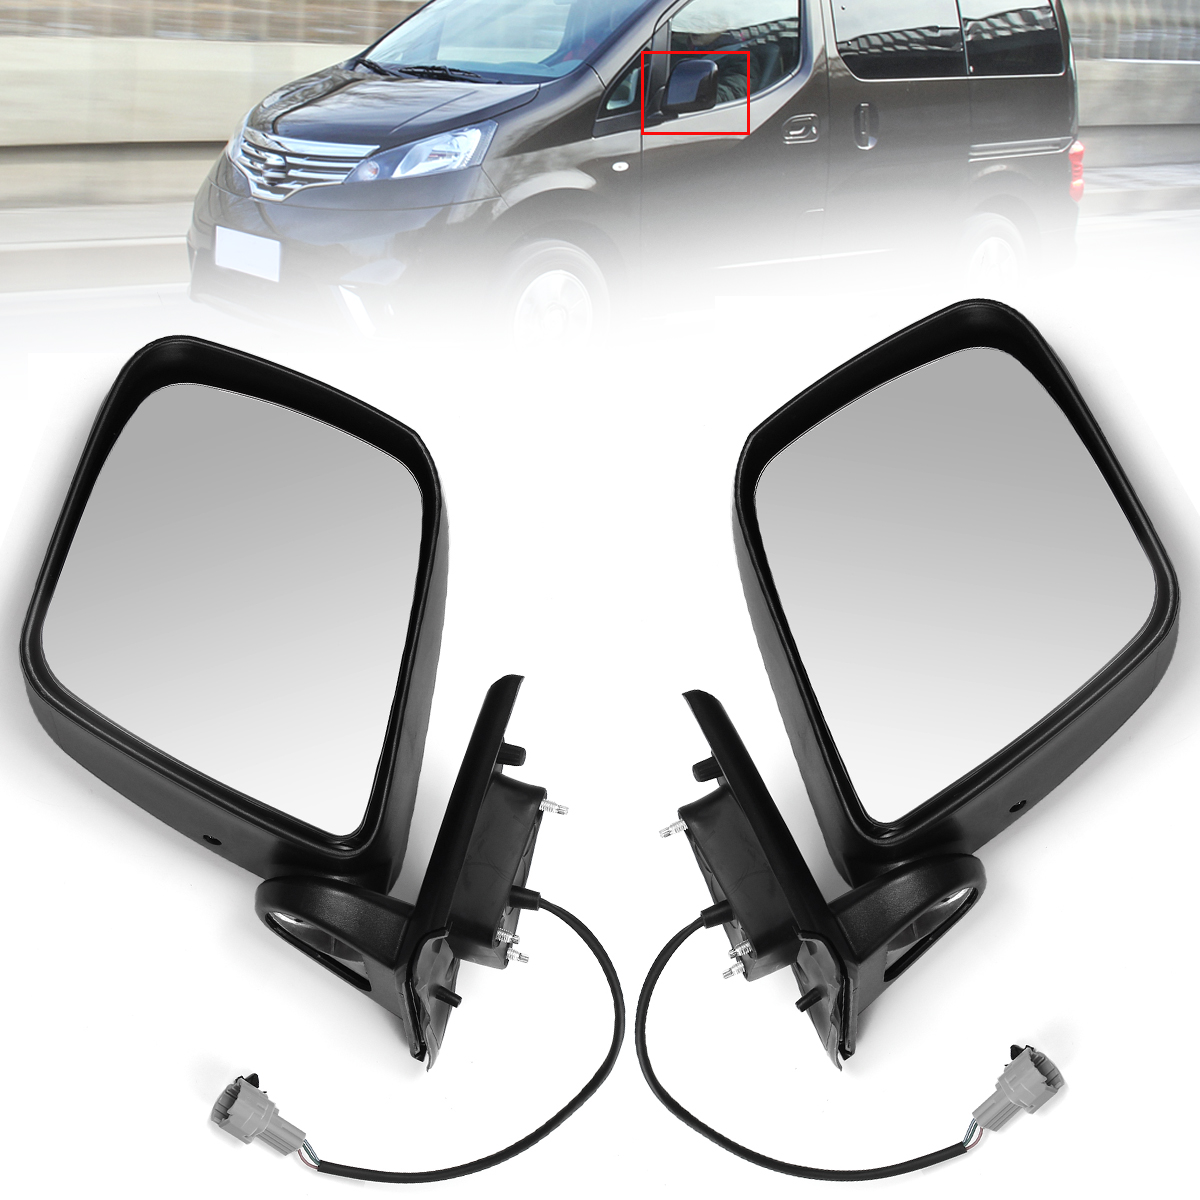 For Fiat Idea 03-13 Right Driver side wing mirror glass with plate